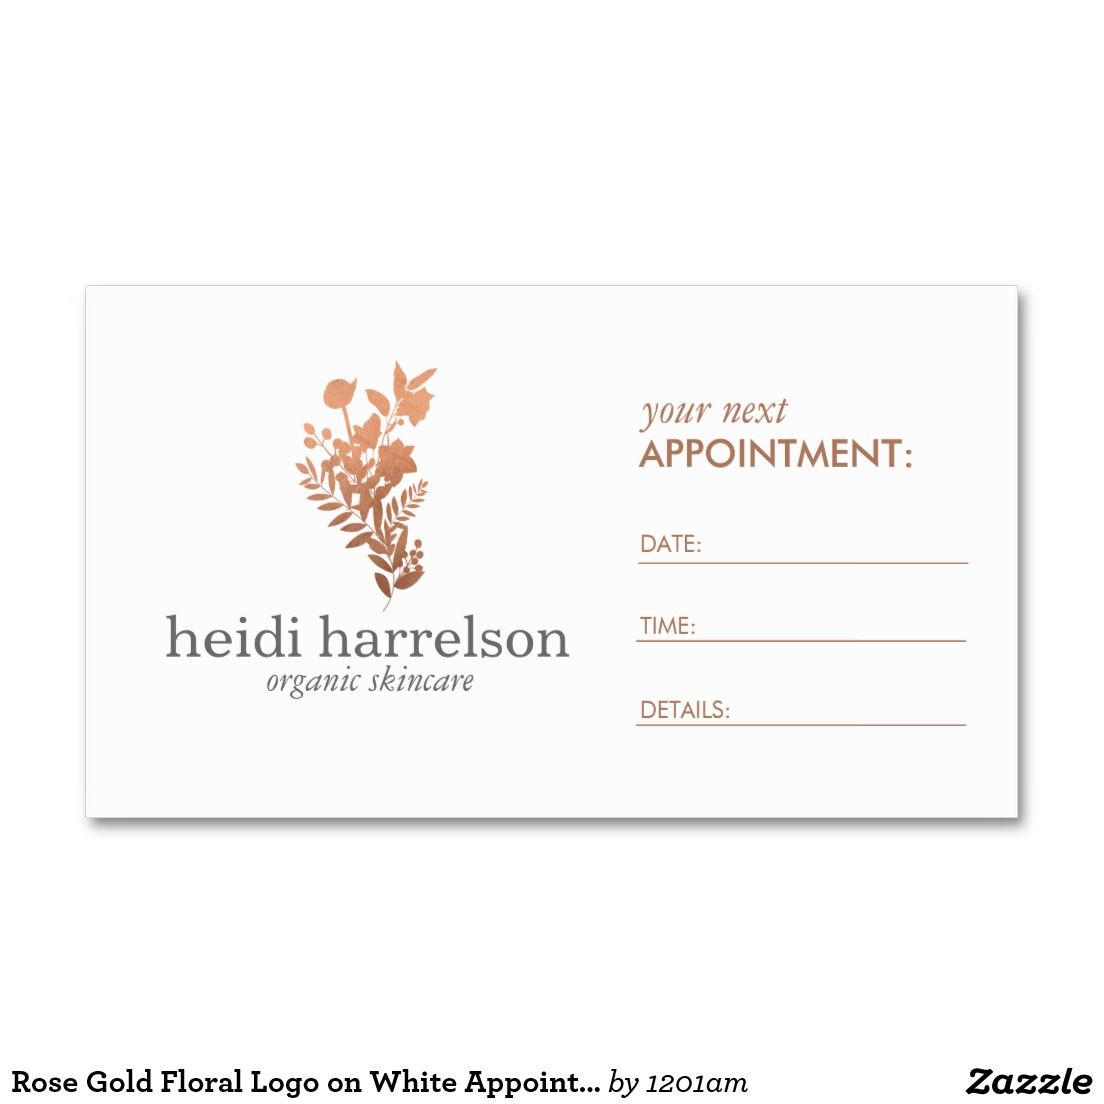 Rose Gold Floral Logo on White Appointment Business Card - Brand ...